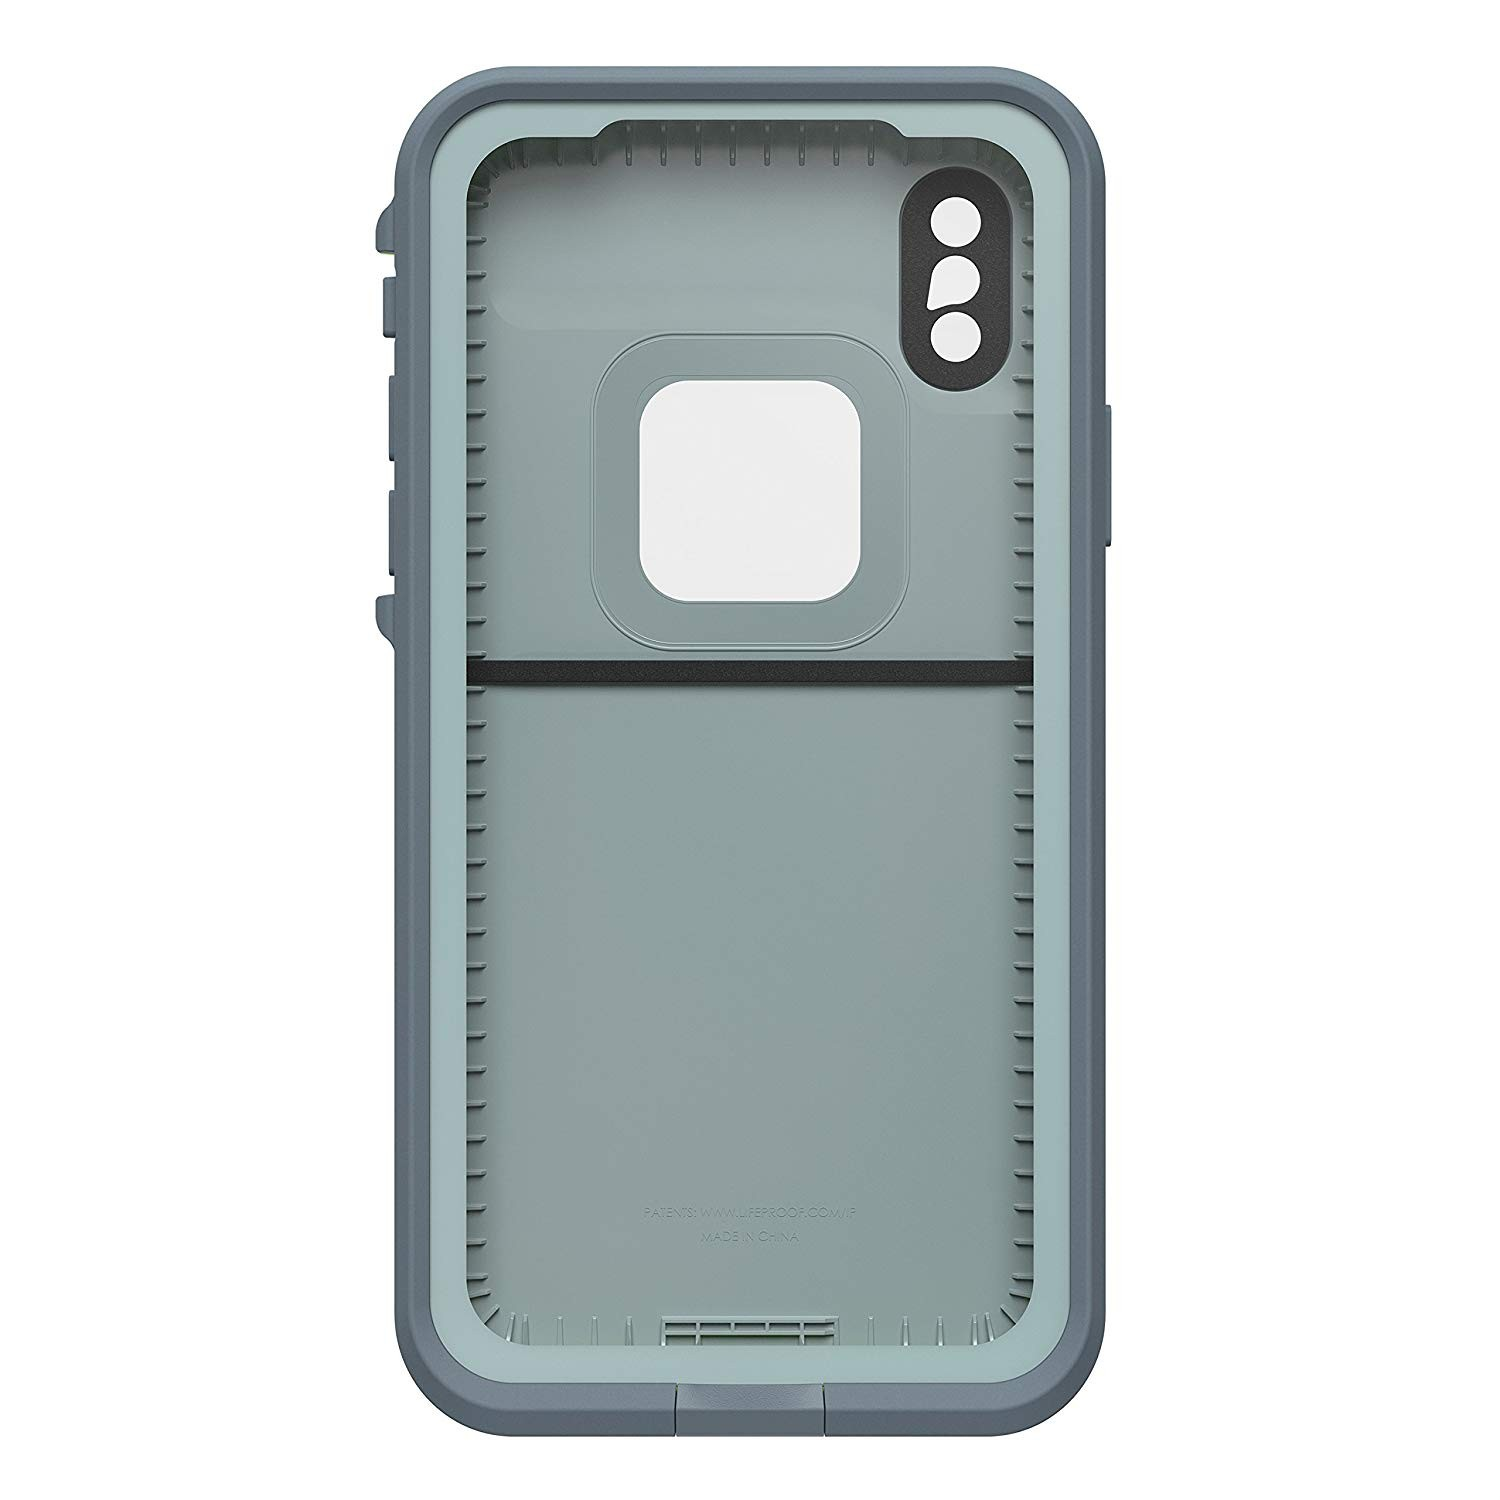 Lifeproof FRĒ Series Waterproof Case for iPhone X - Abyss/Lime/Stormy Weather, 77-57164